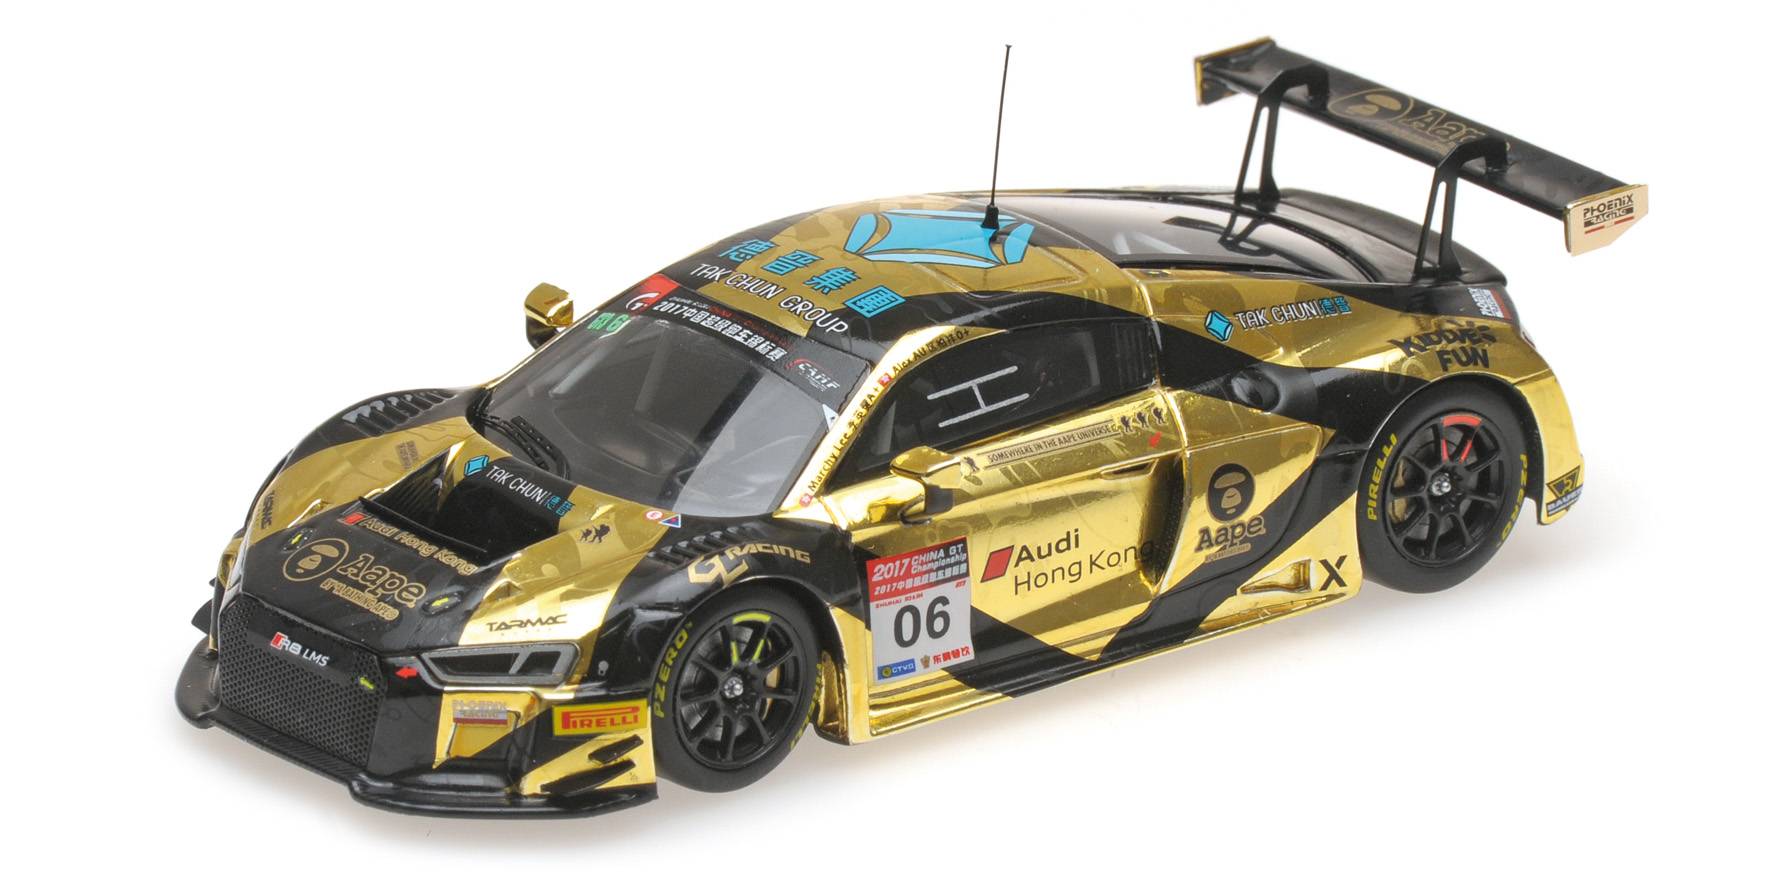 Audi R8 LMS GT China 2017 Aape/Tak Chun-Lee/Lo